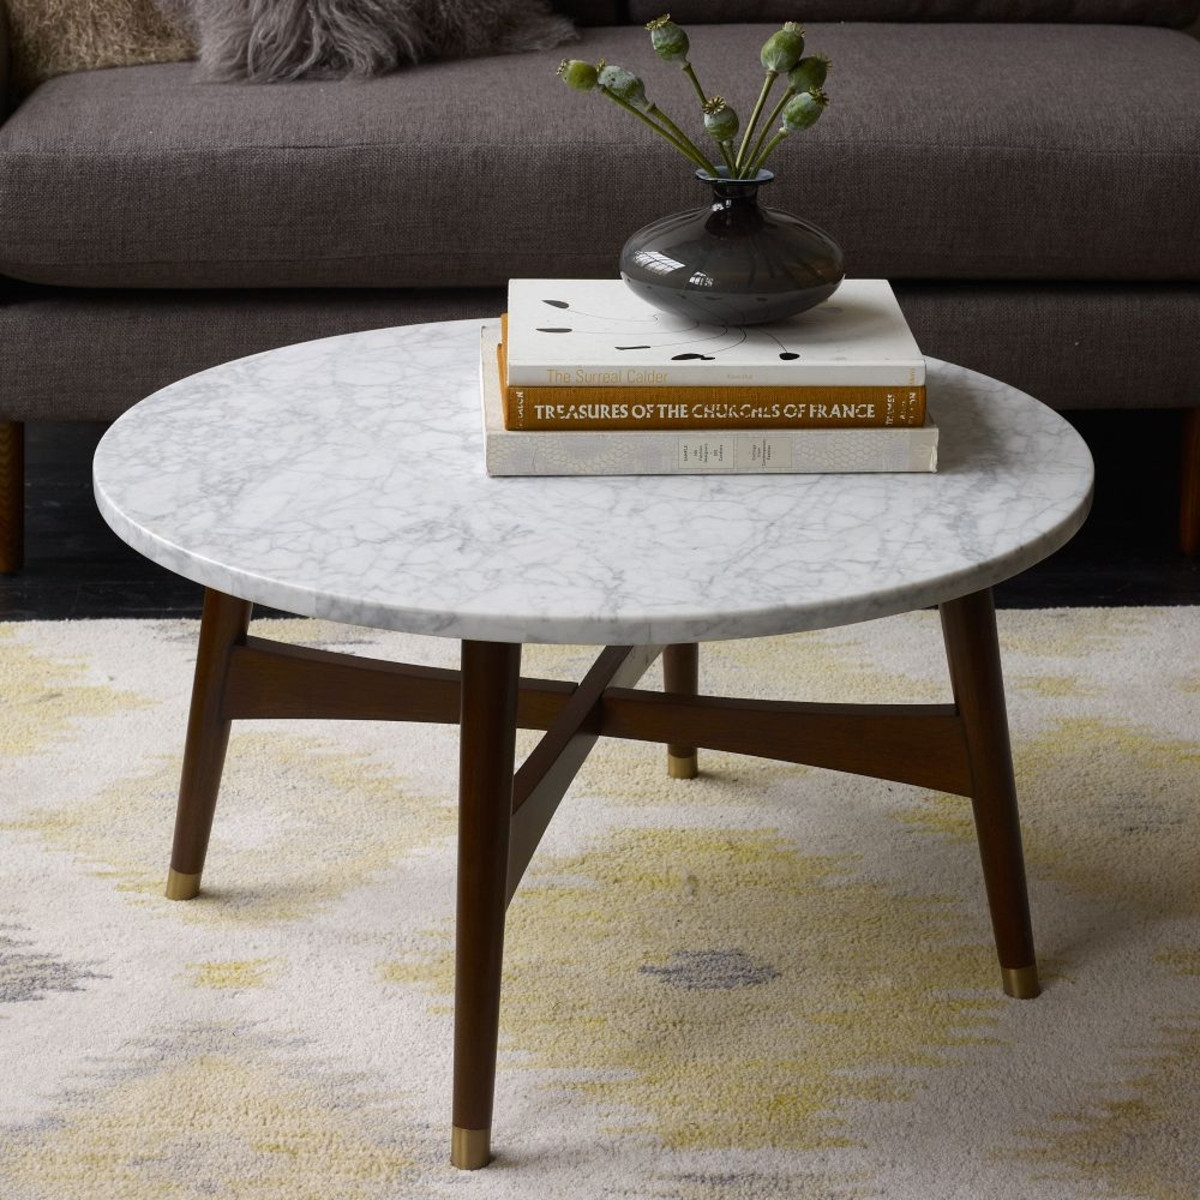 Decor: Inspiring Marble Coffee Table For Living Room Furniture Ideas with regard to 2 Tone Grey and White Marble Coffee Tables (Image 13 of 30)